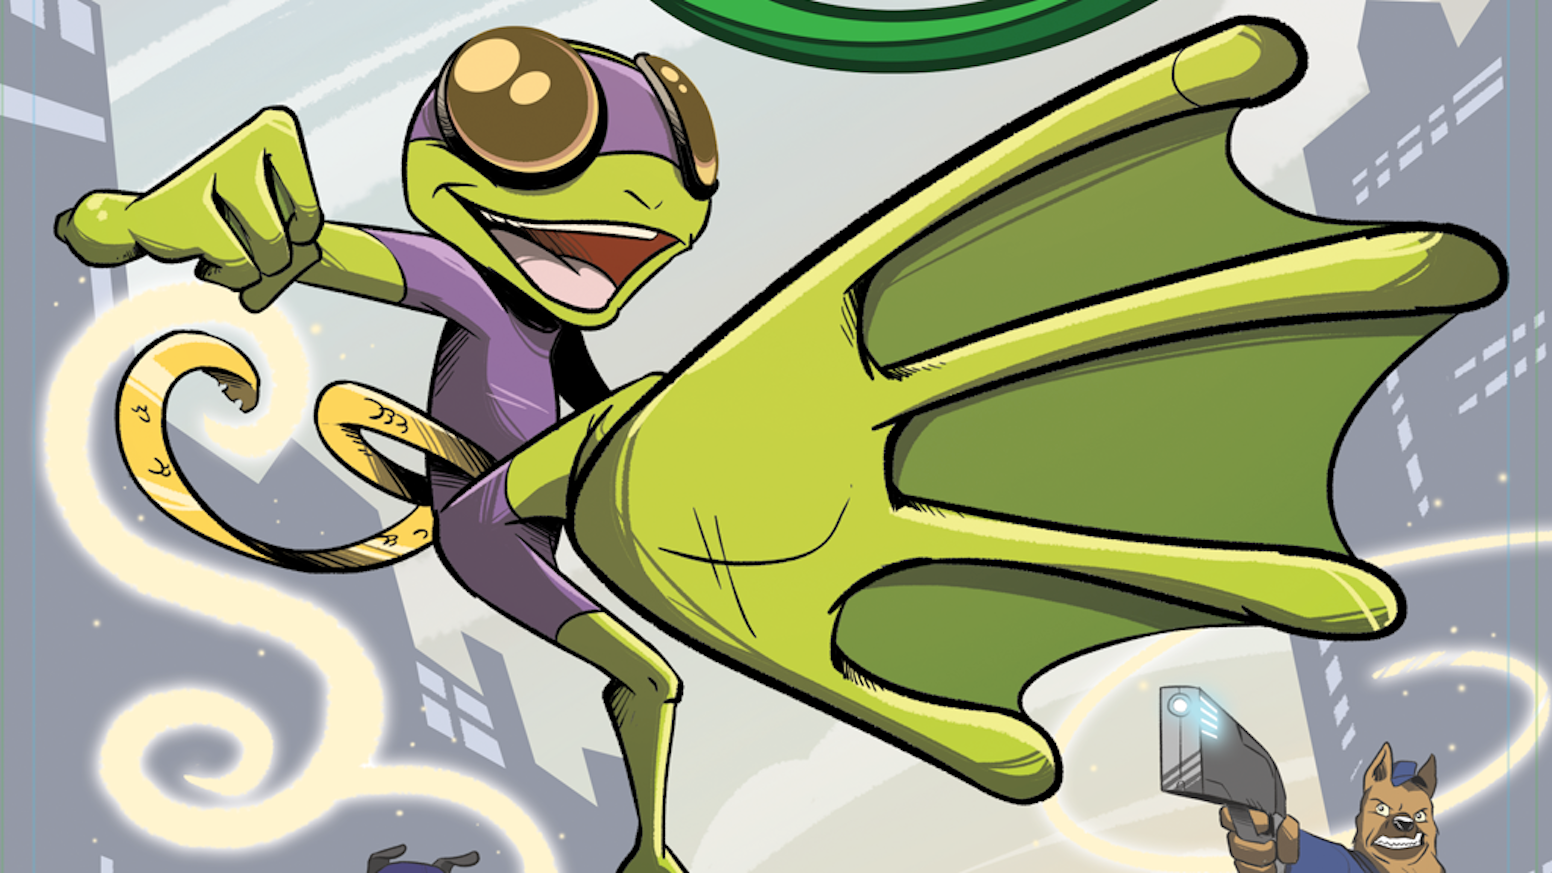 Healed by an ancient Dragon, young Cyd Pollywog channels primeval power to fight crime, battle monsters and become a HERO. Welcome to the world of DRAGON FROG.